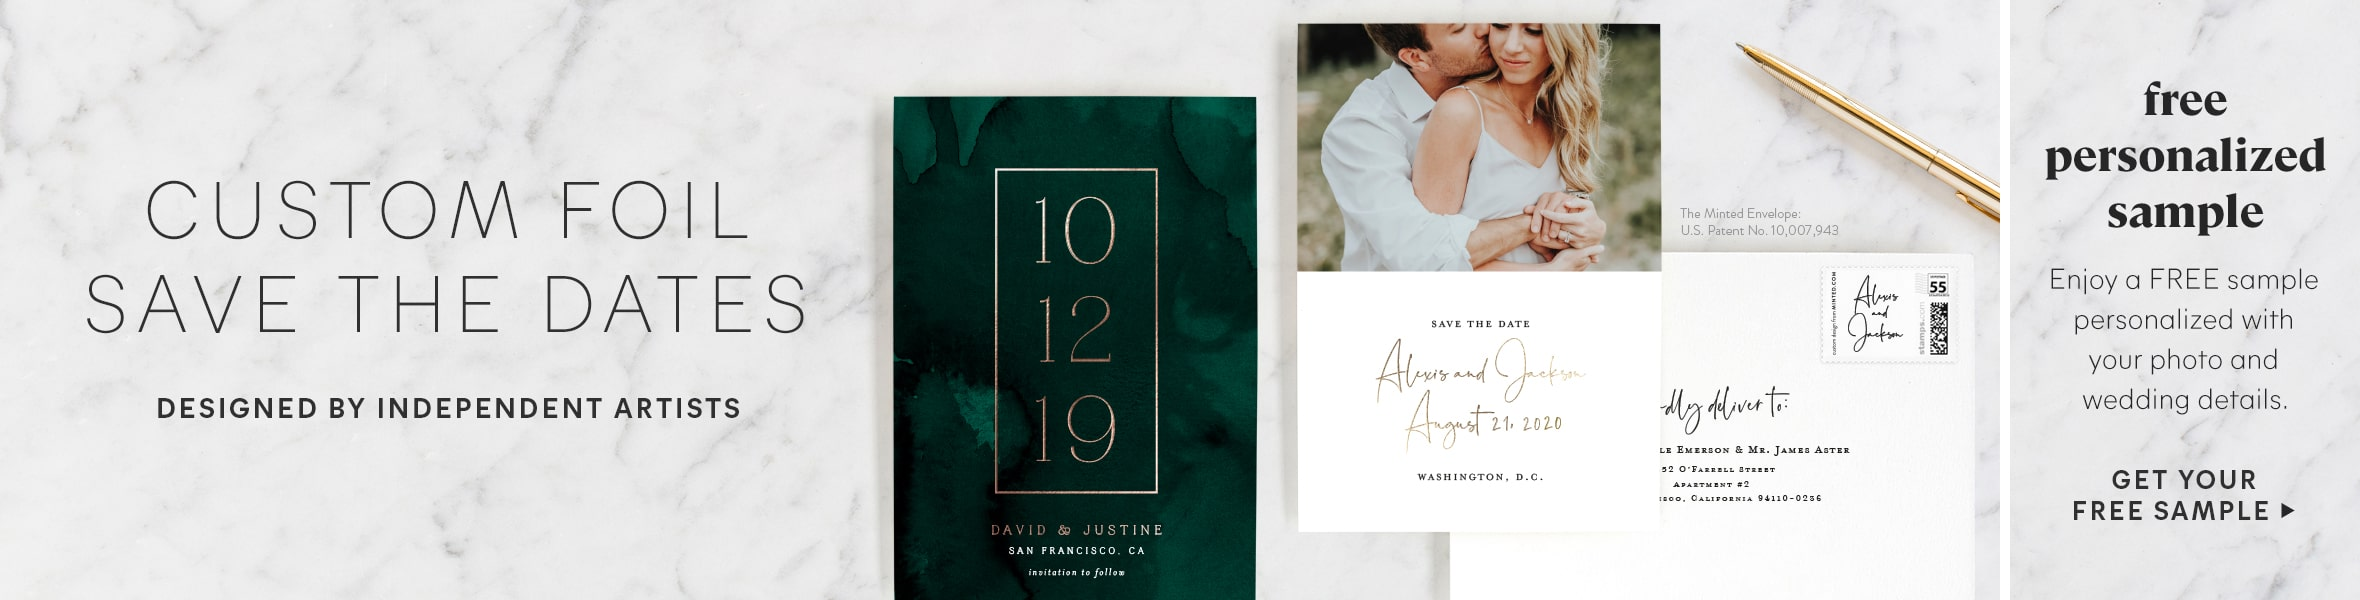 Custom Foil Save the Date Cards